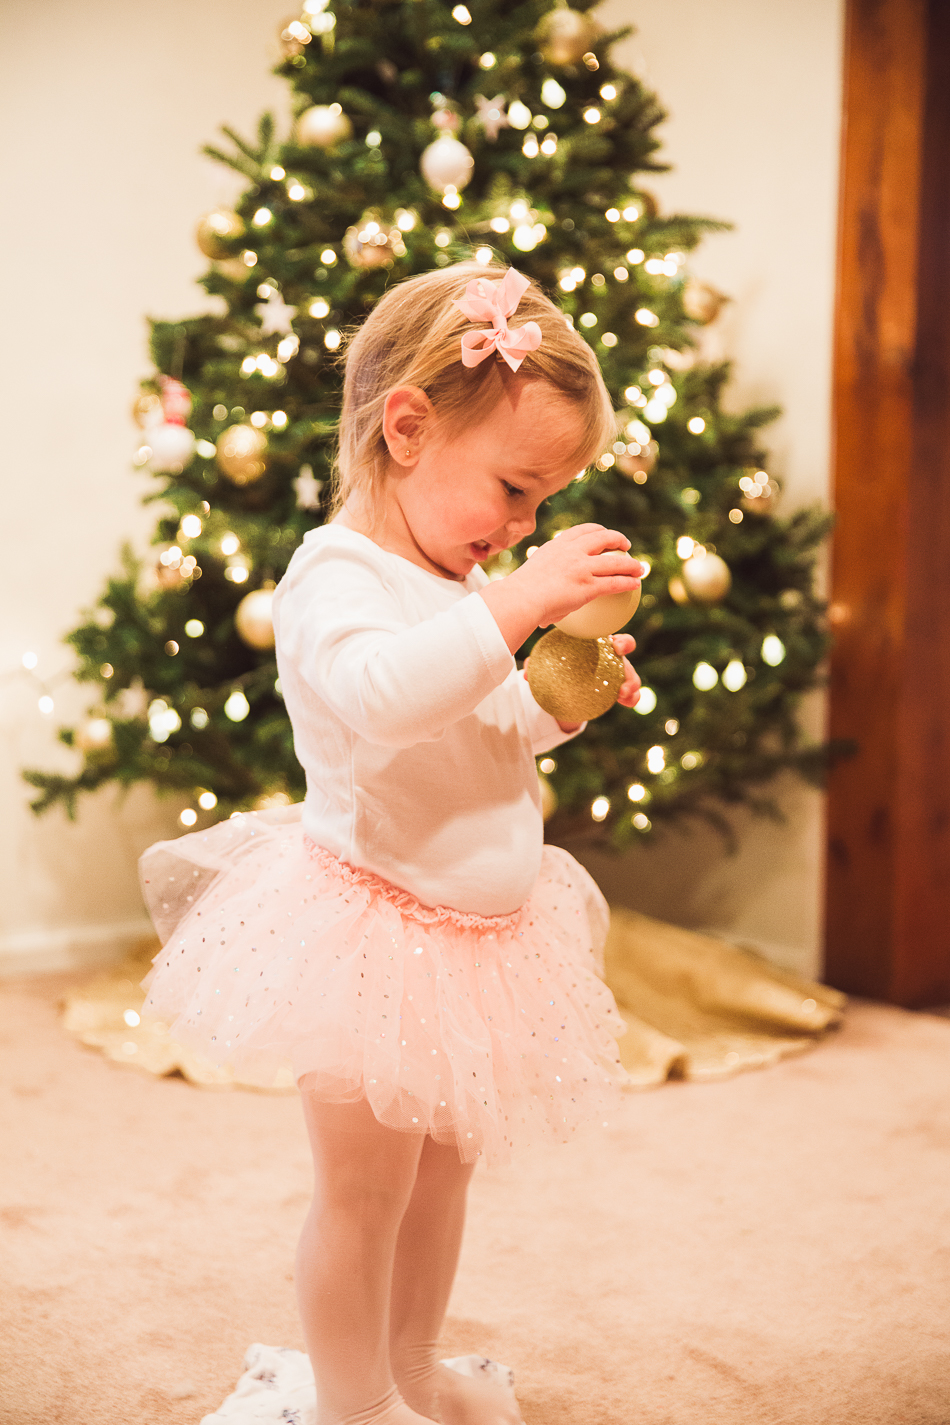 Sugar Plum Fairy // livelovesimple.com